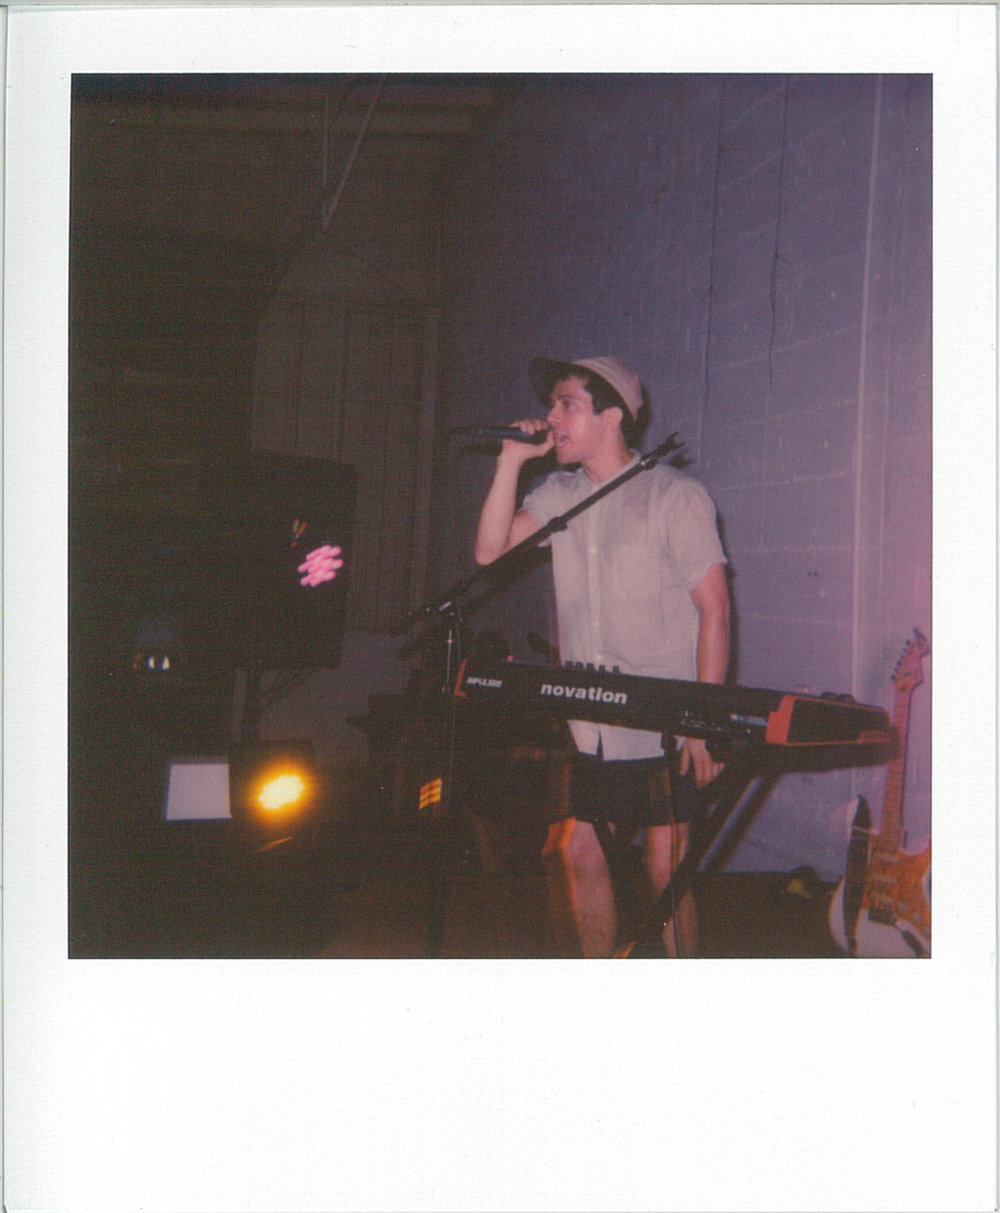 So Much Light, polaroid by Adam Murphy @ nonecktie.tumblr.com